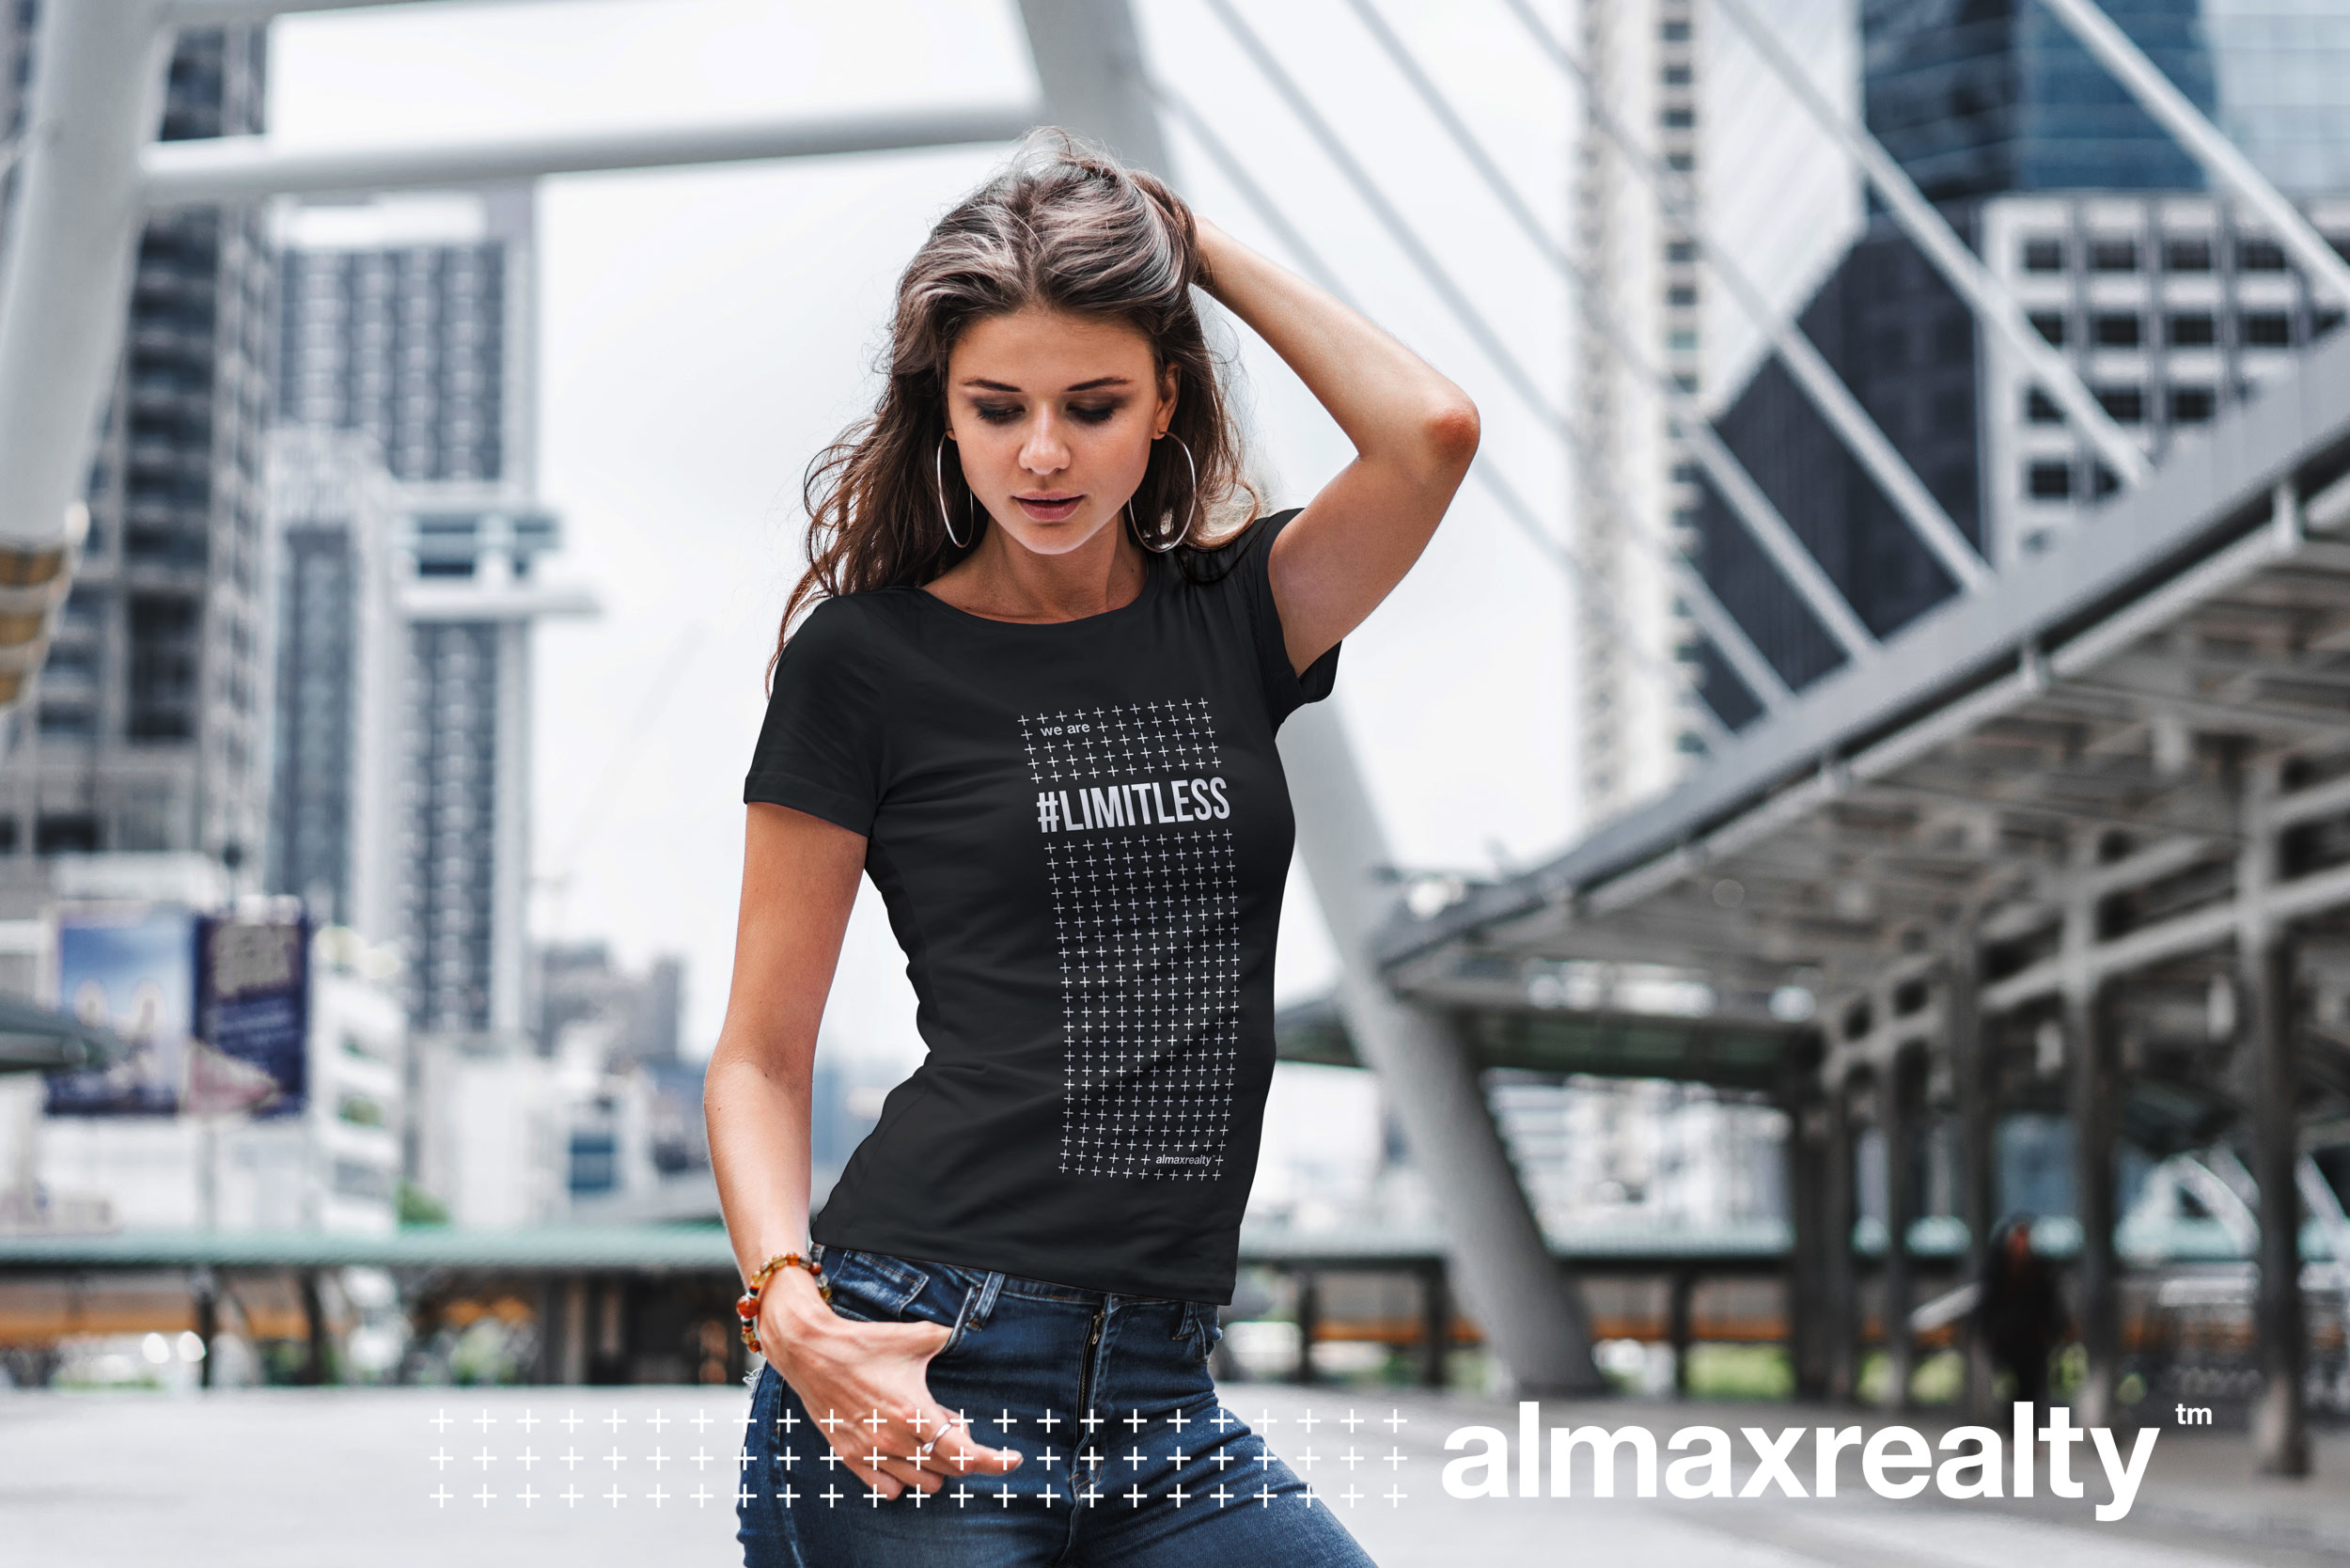 @almaxrealty #moreismore social media and apparel campaign